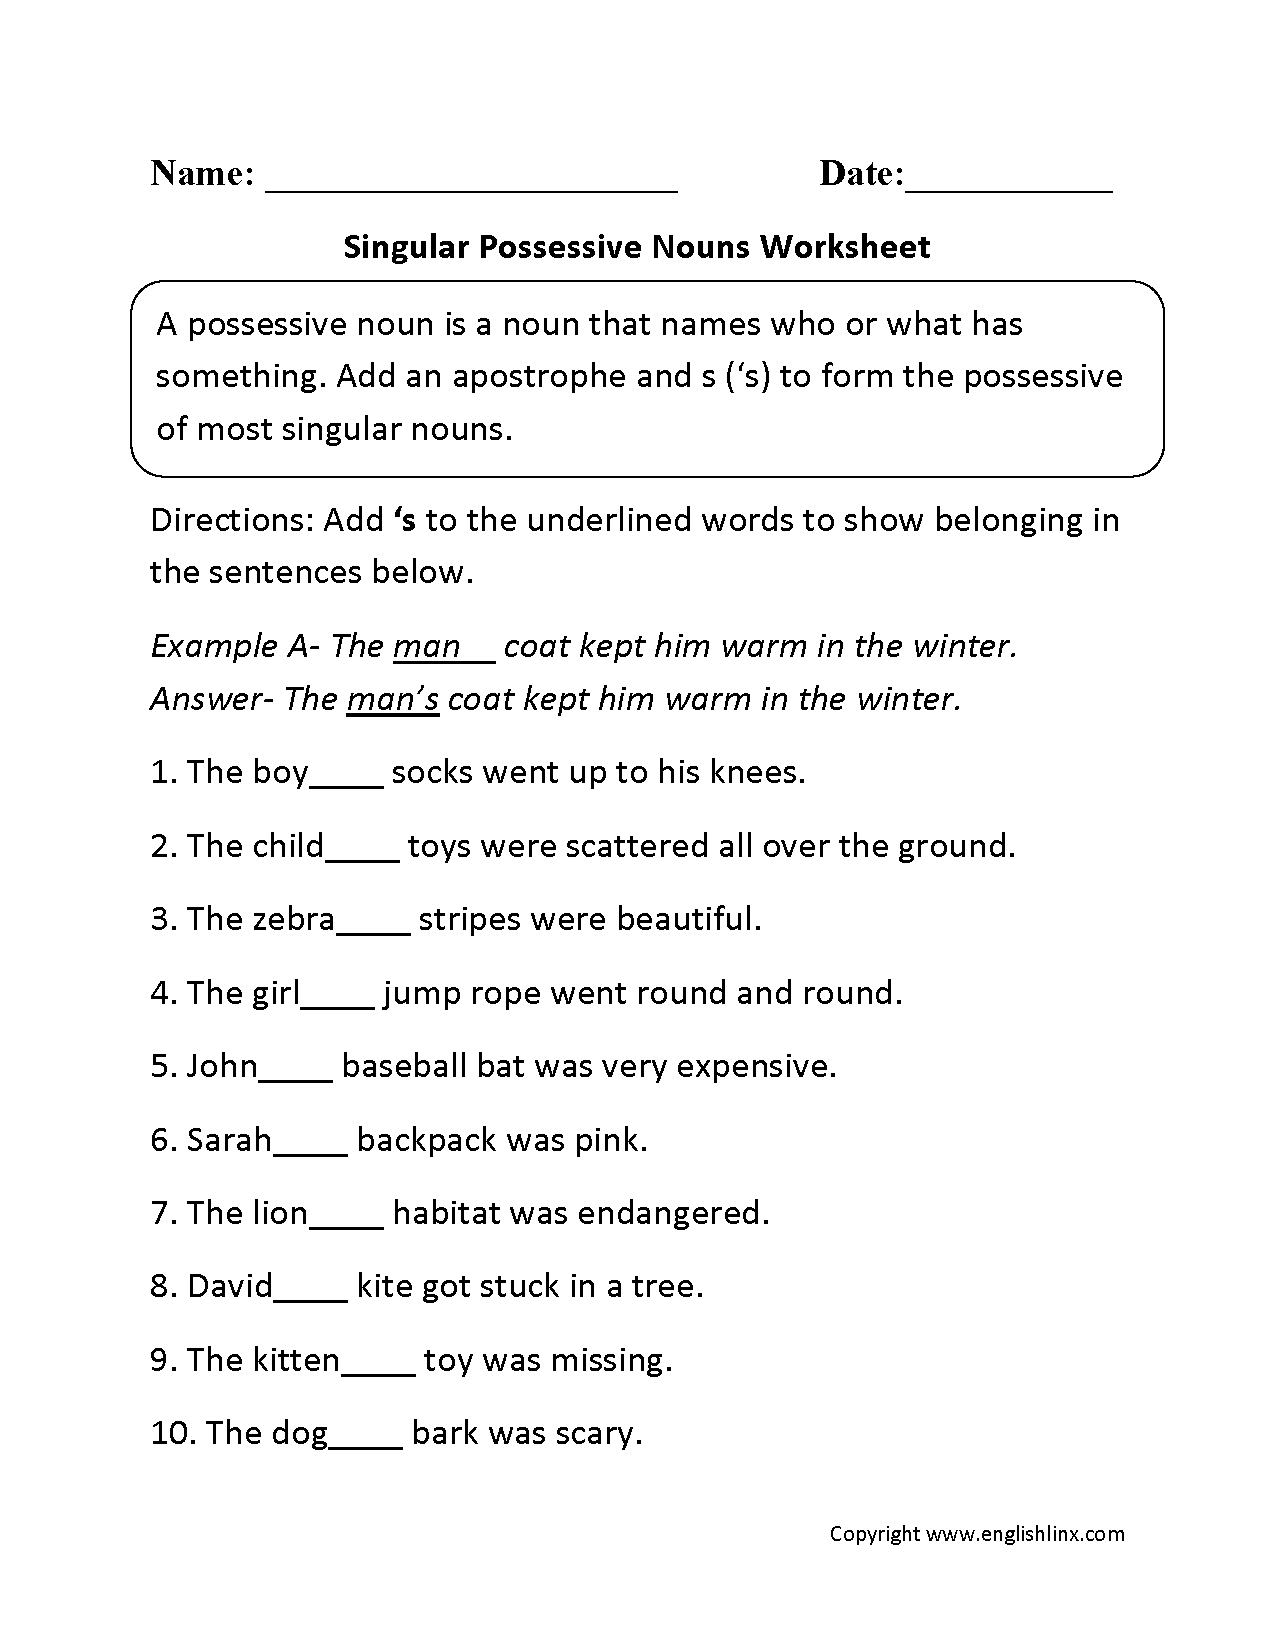 Printables Possessive Nouns Worksheets possessive nouns worksheets singular worksheets